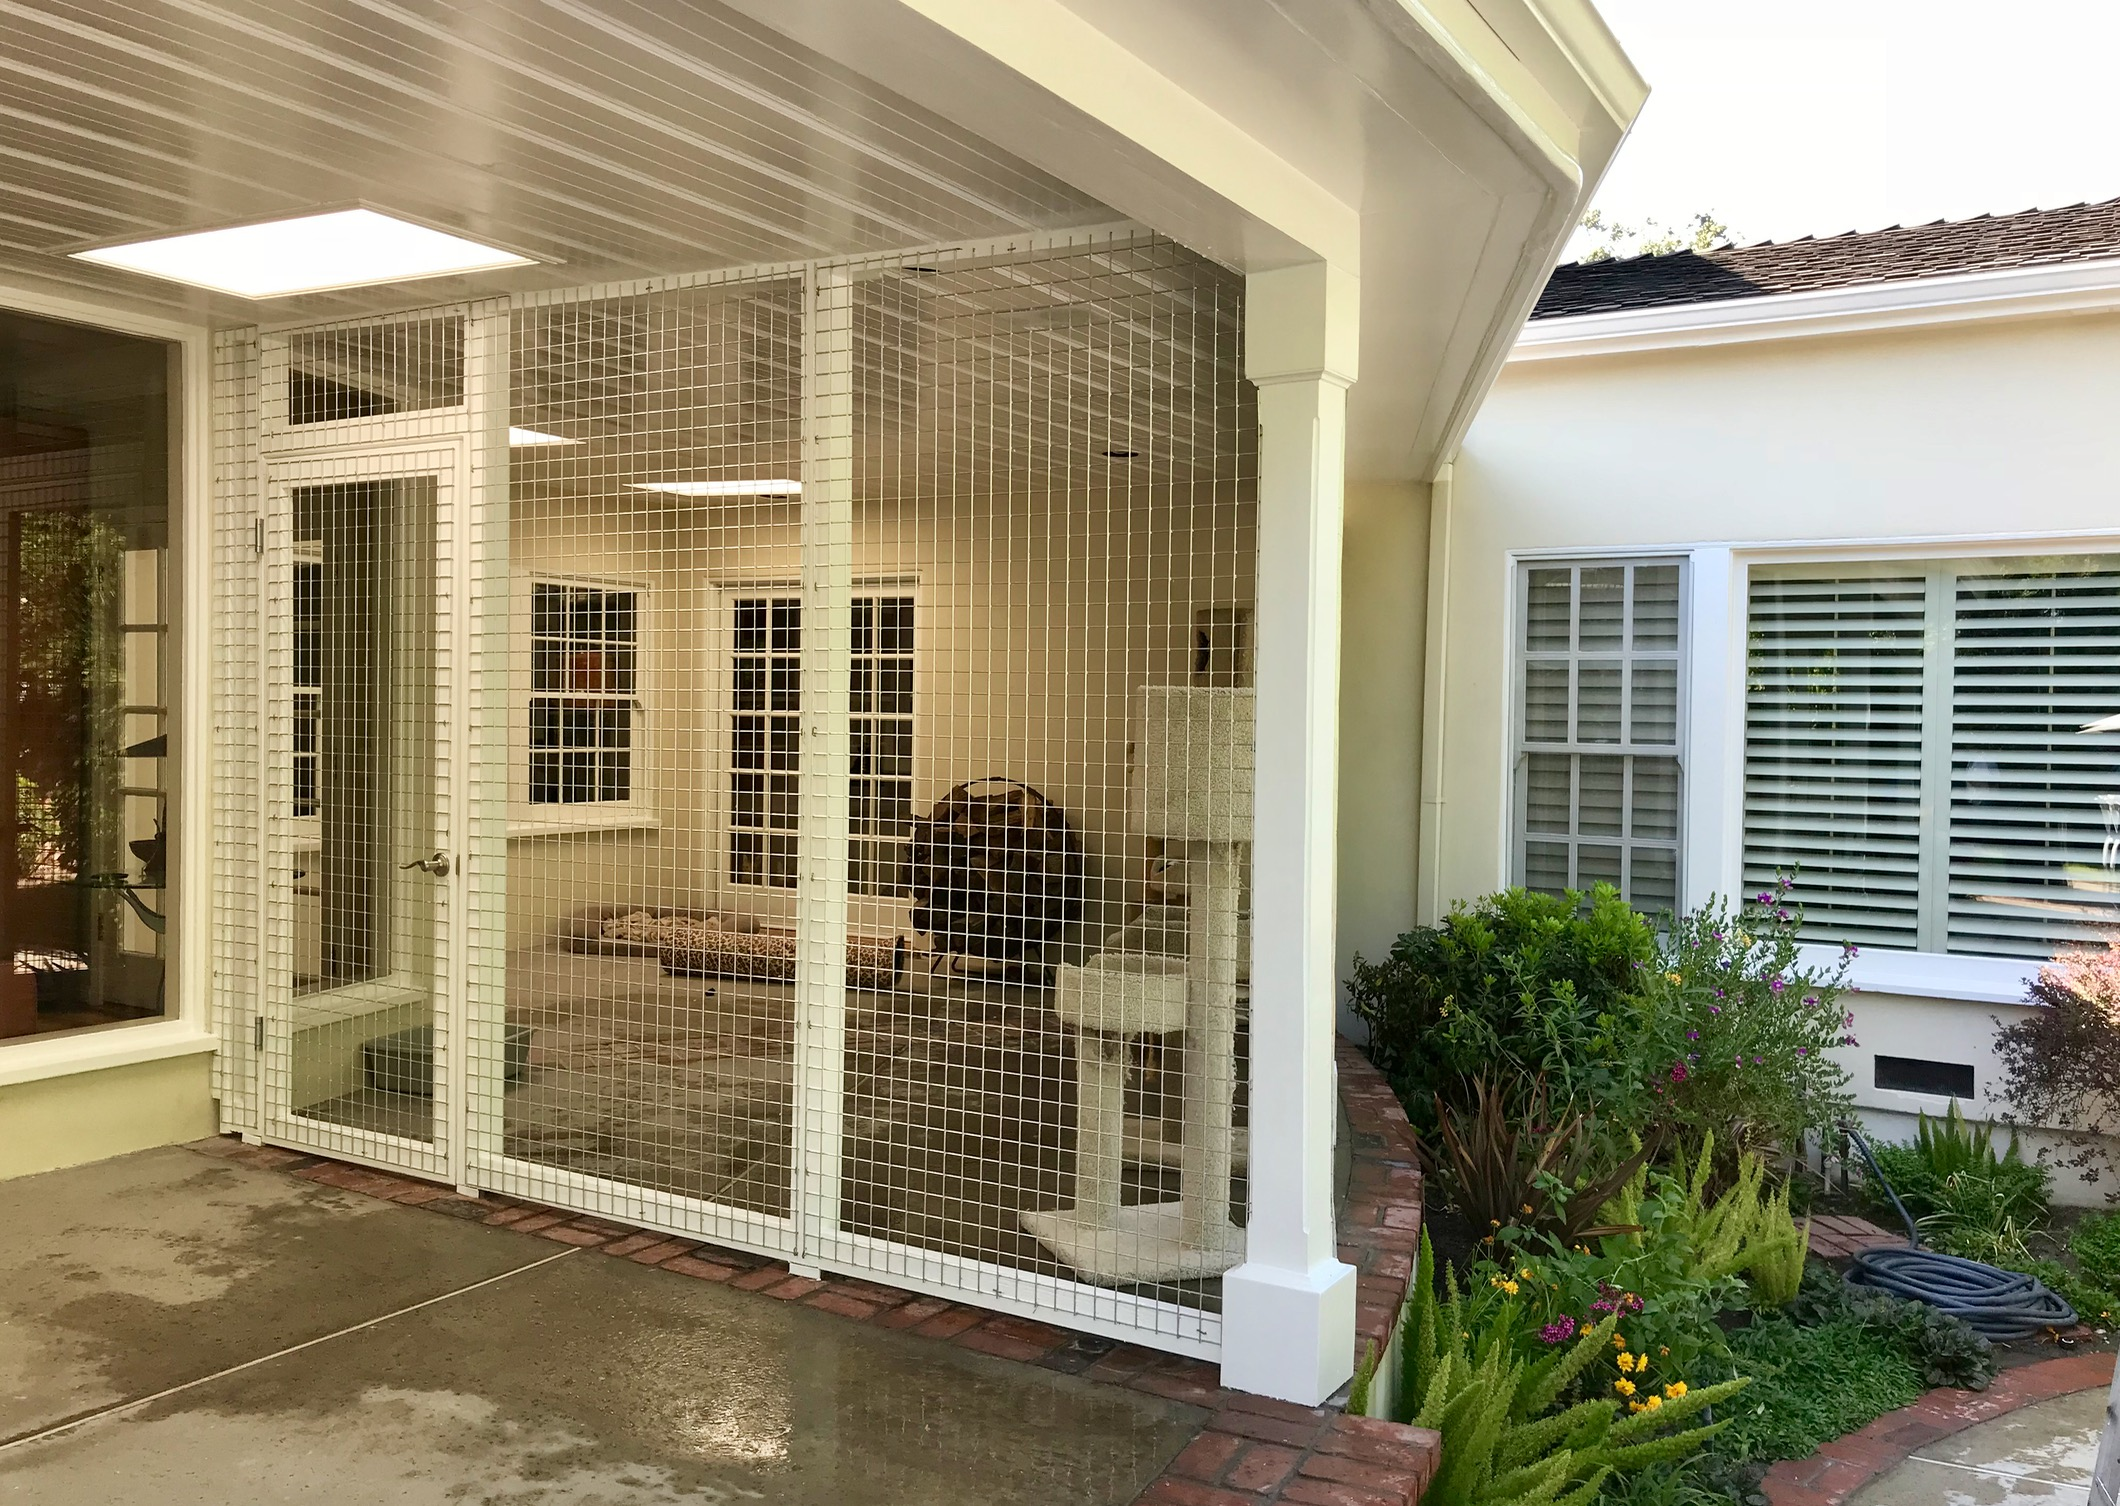 Toluca Lake Catio Left Side with Door